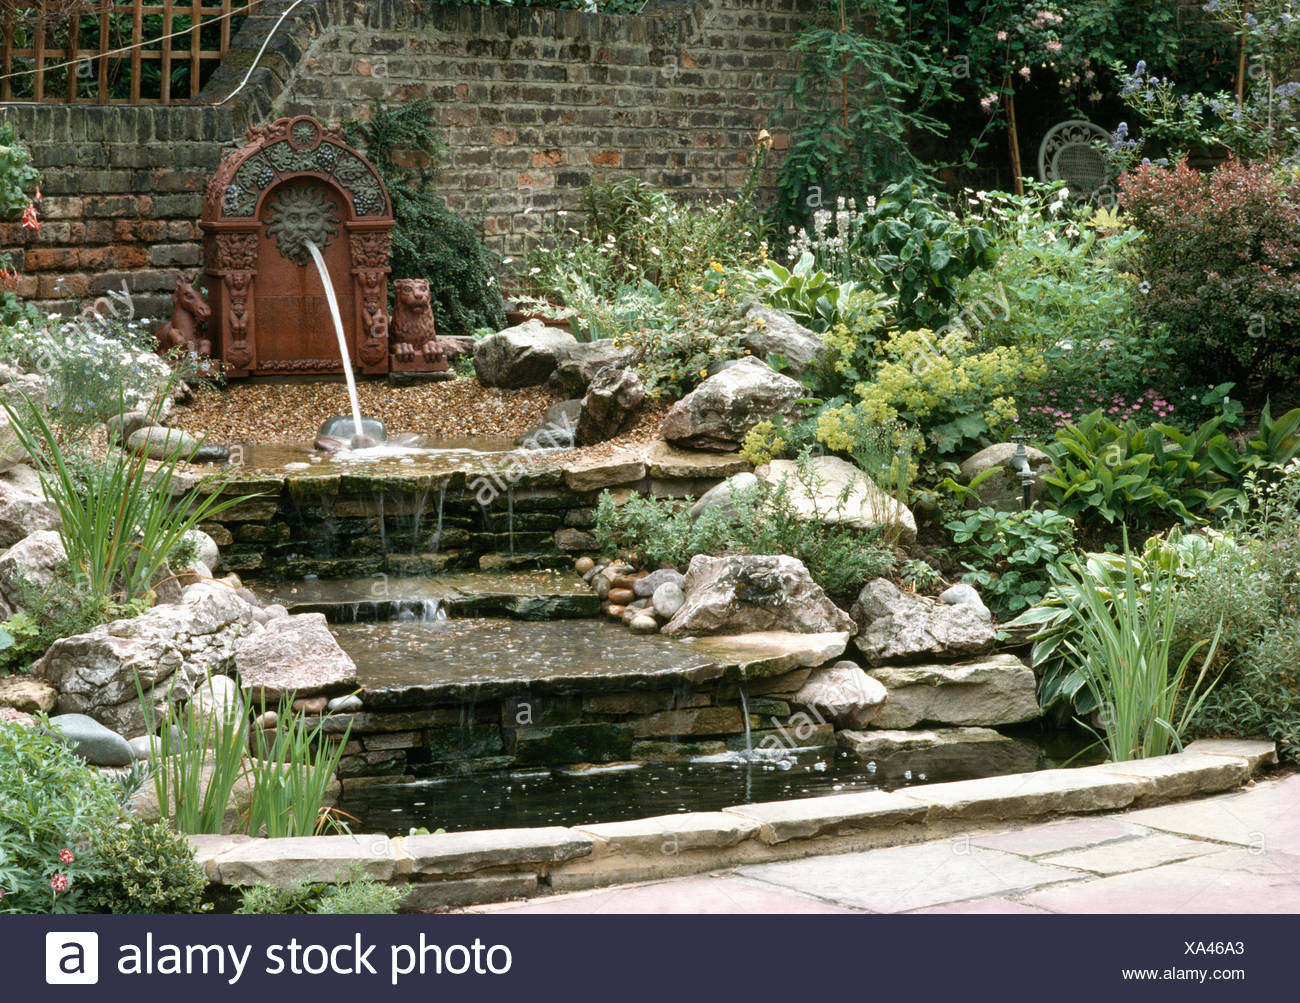 Lion Fountain On Wall Above Waterfall Over Stone Steps Edged With Rocks In A  Walled Country Garden In Summer